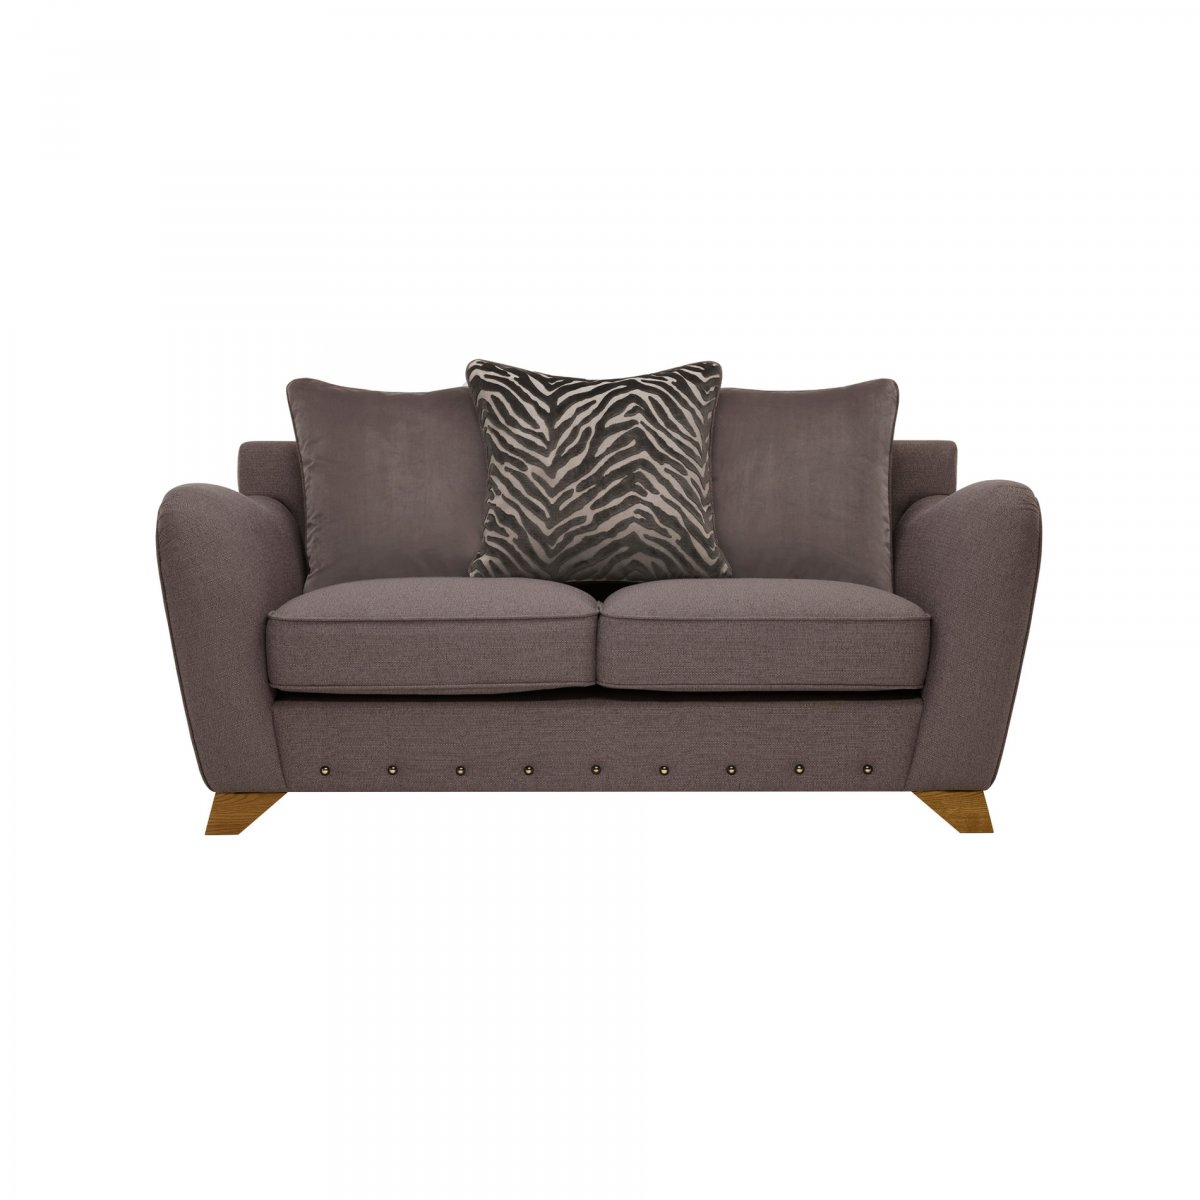 Abbey 2 Seater Pillow Back Sofa in Fabric  Oak Furniture Land